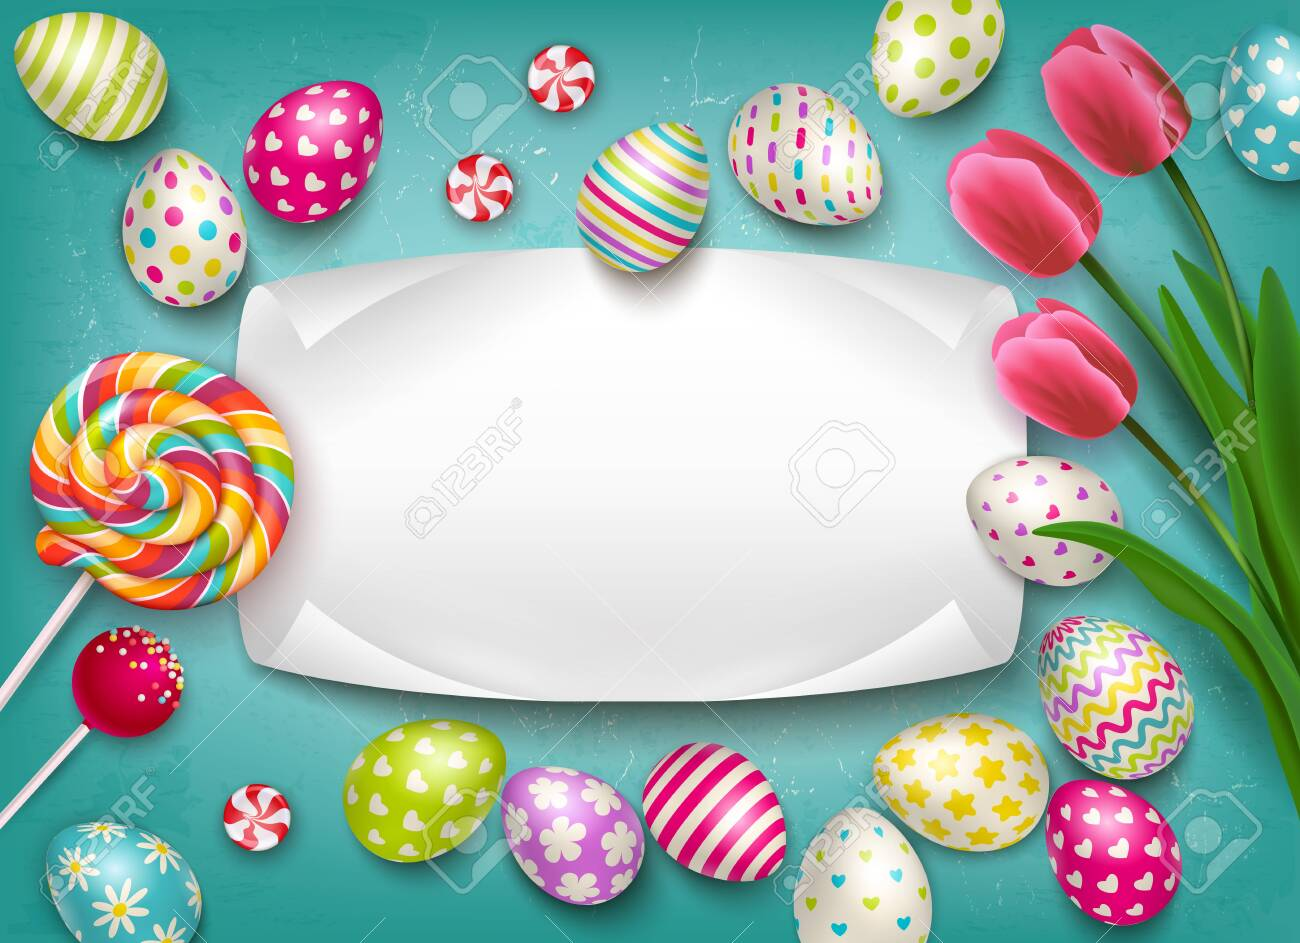 Easter composition with images of colored festive eggs lollipop sweets and flowers with empty text frame vector illustration - 124236107